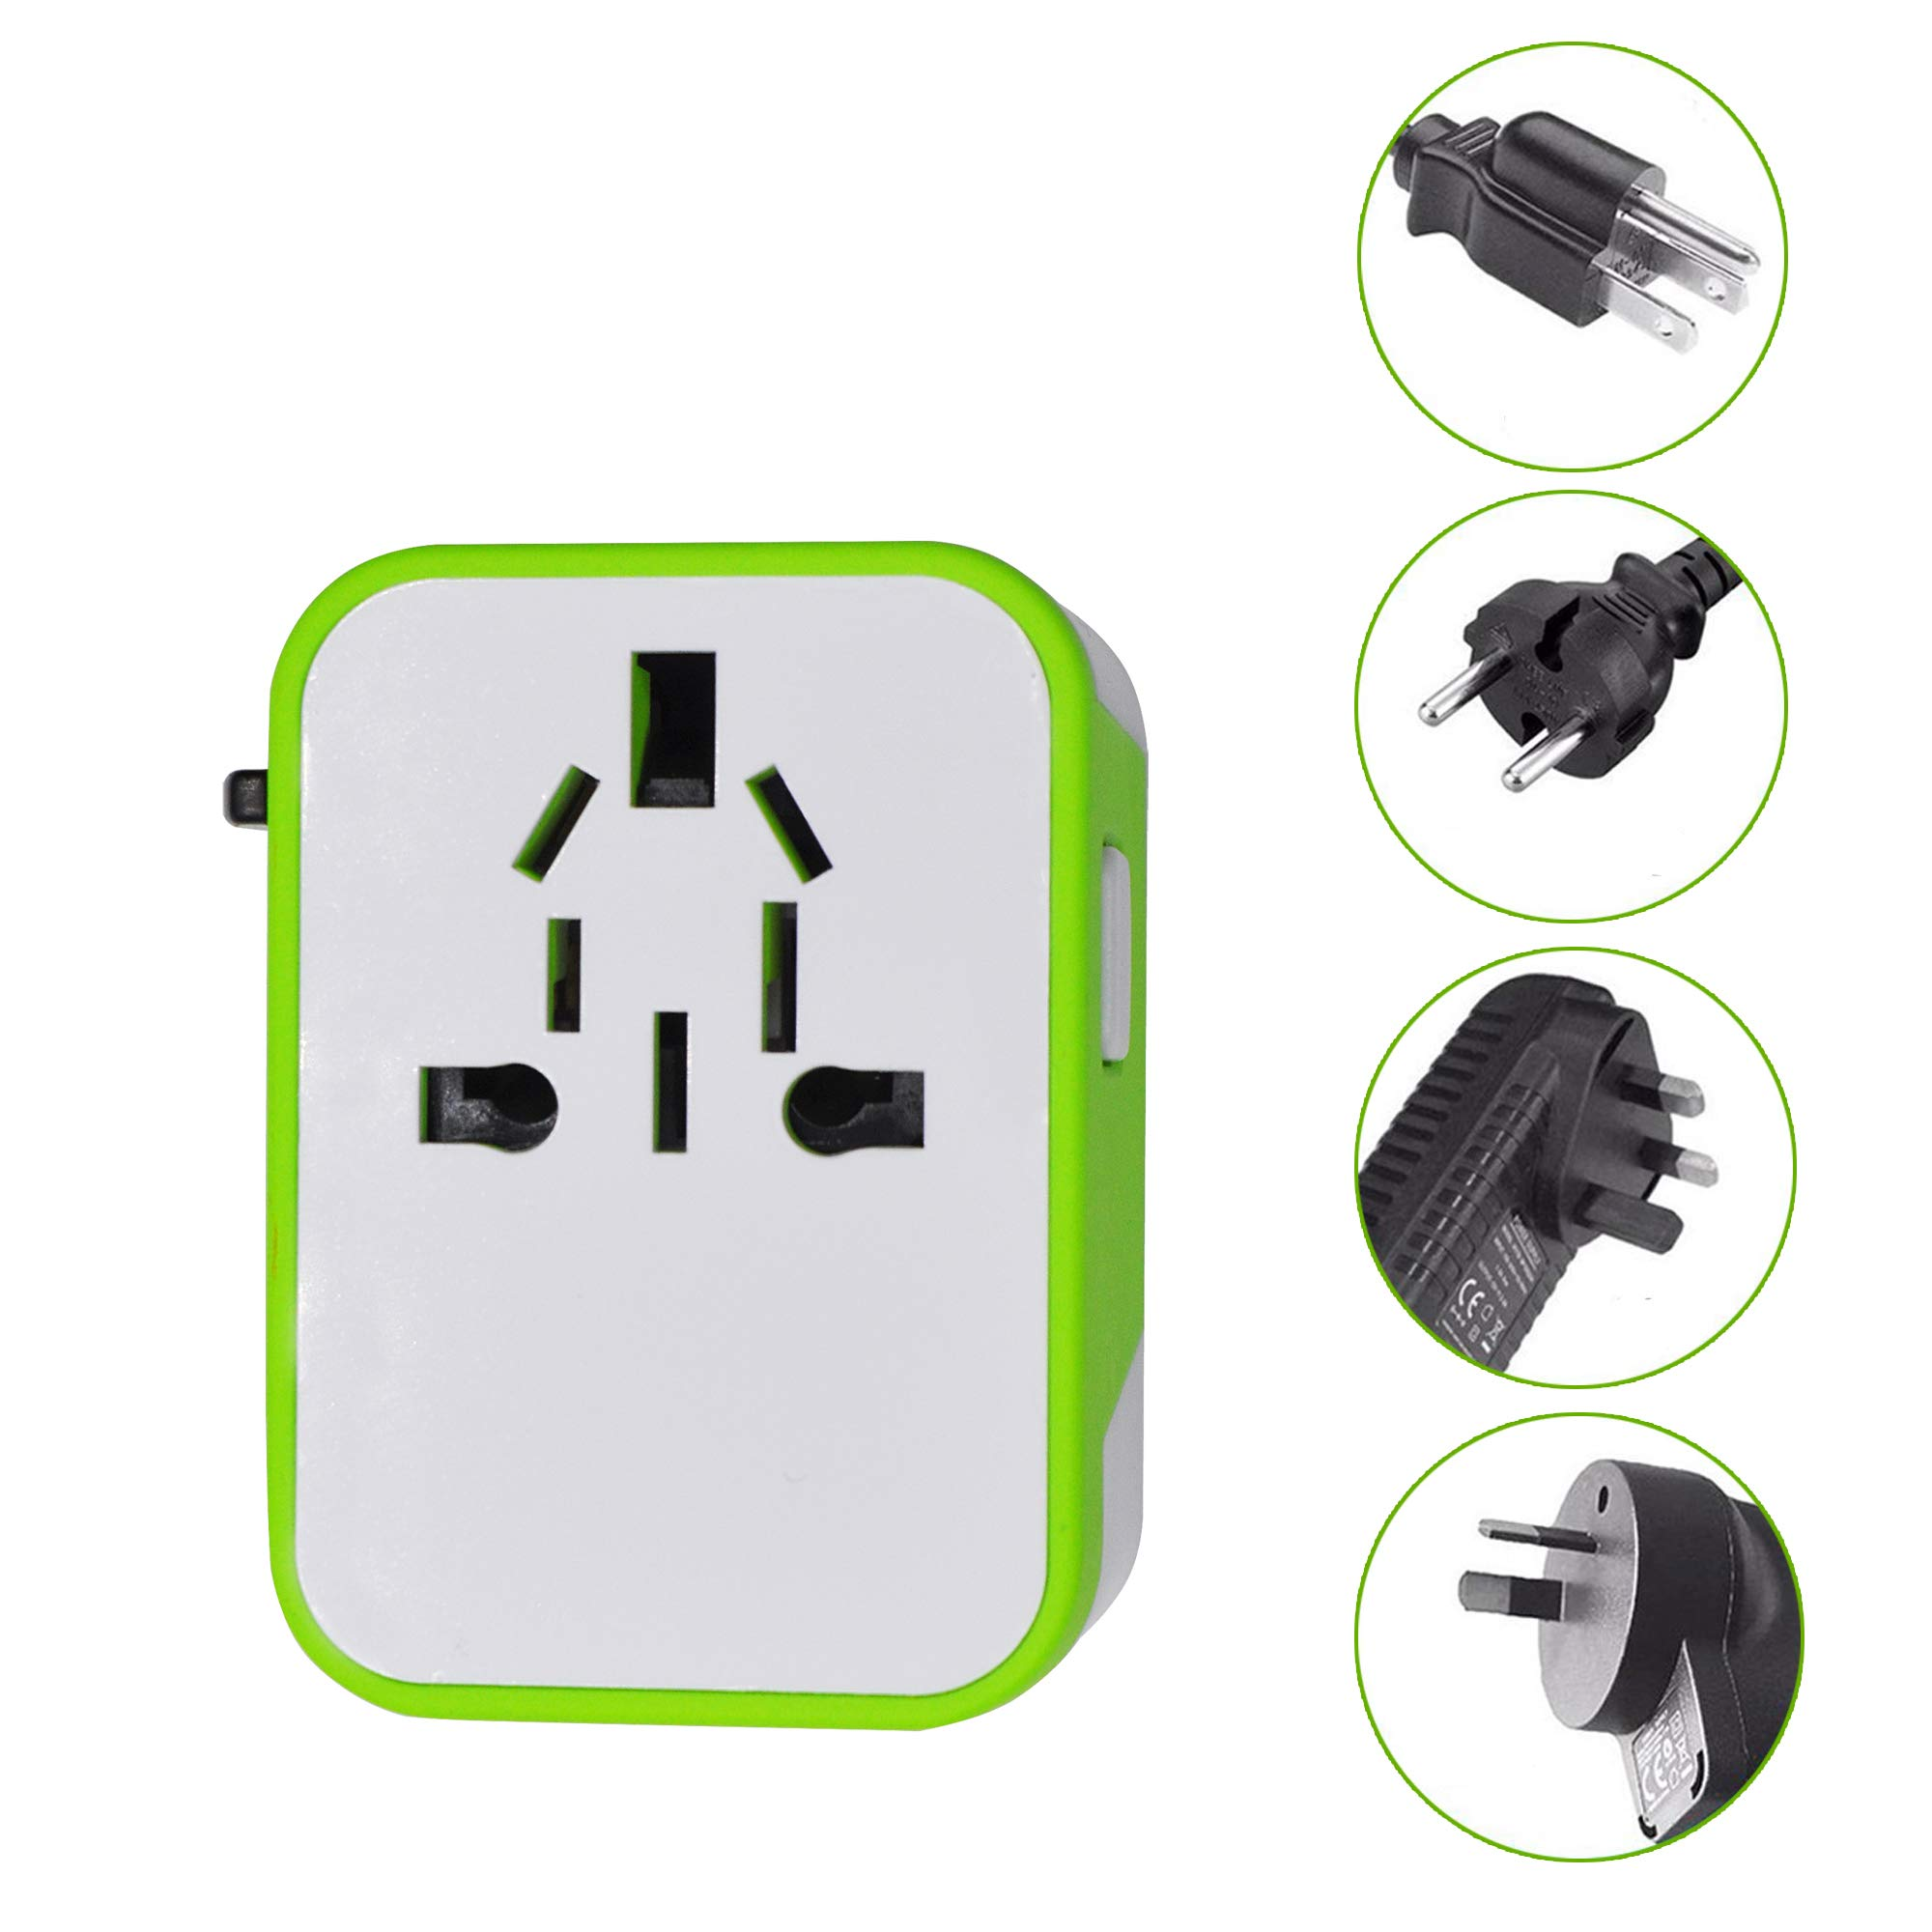 Universal Travel Adapter with Quad USB Charger - All-in-One Surge/Spike Protected Electrical Plug with Fast Charging USB Ports, International Power Socket works in 192 Countries - 4XUSB